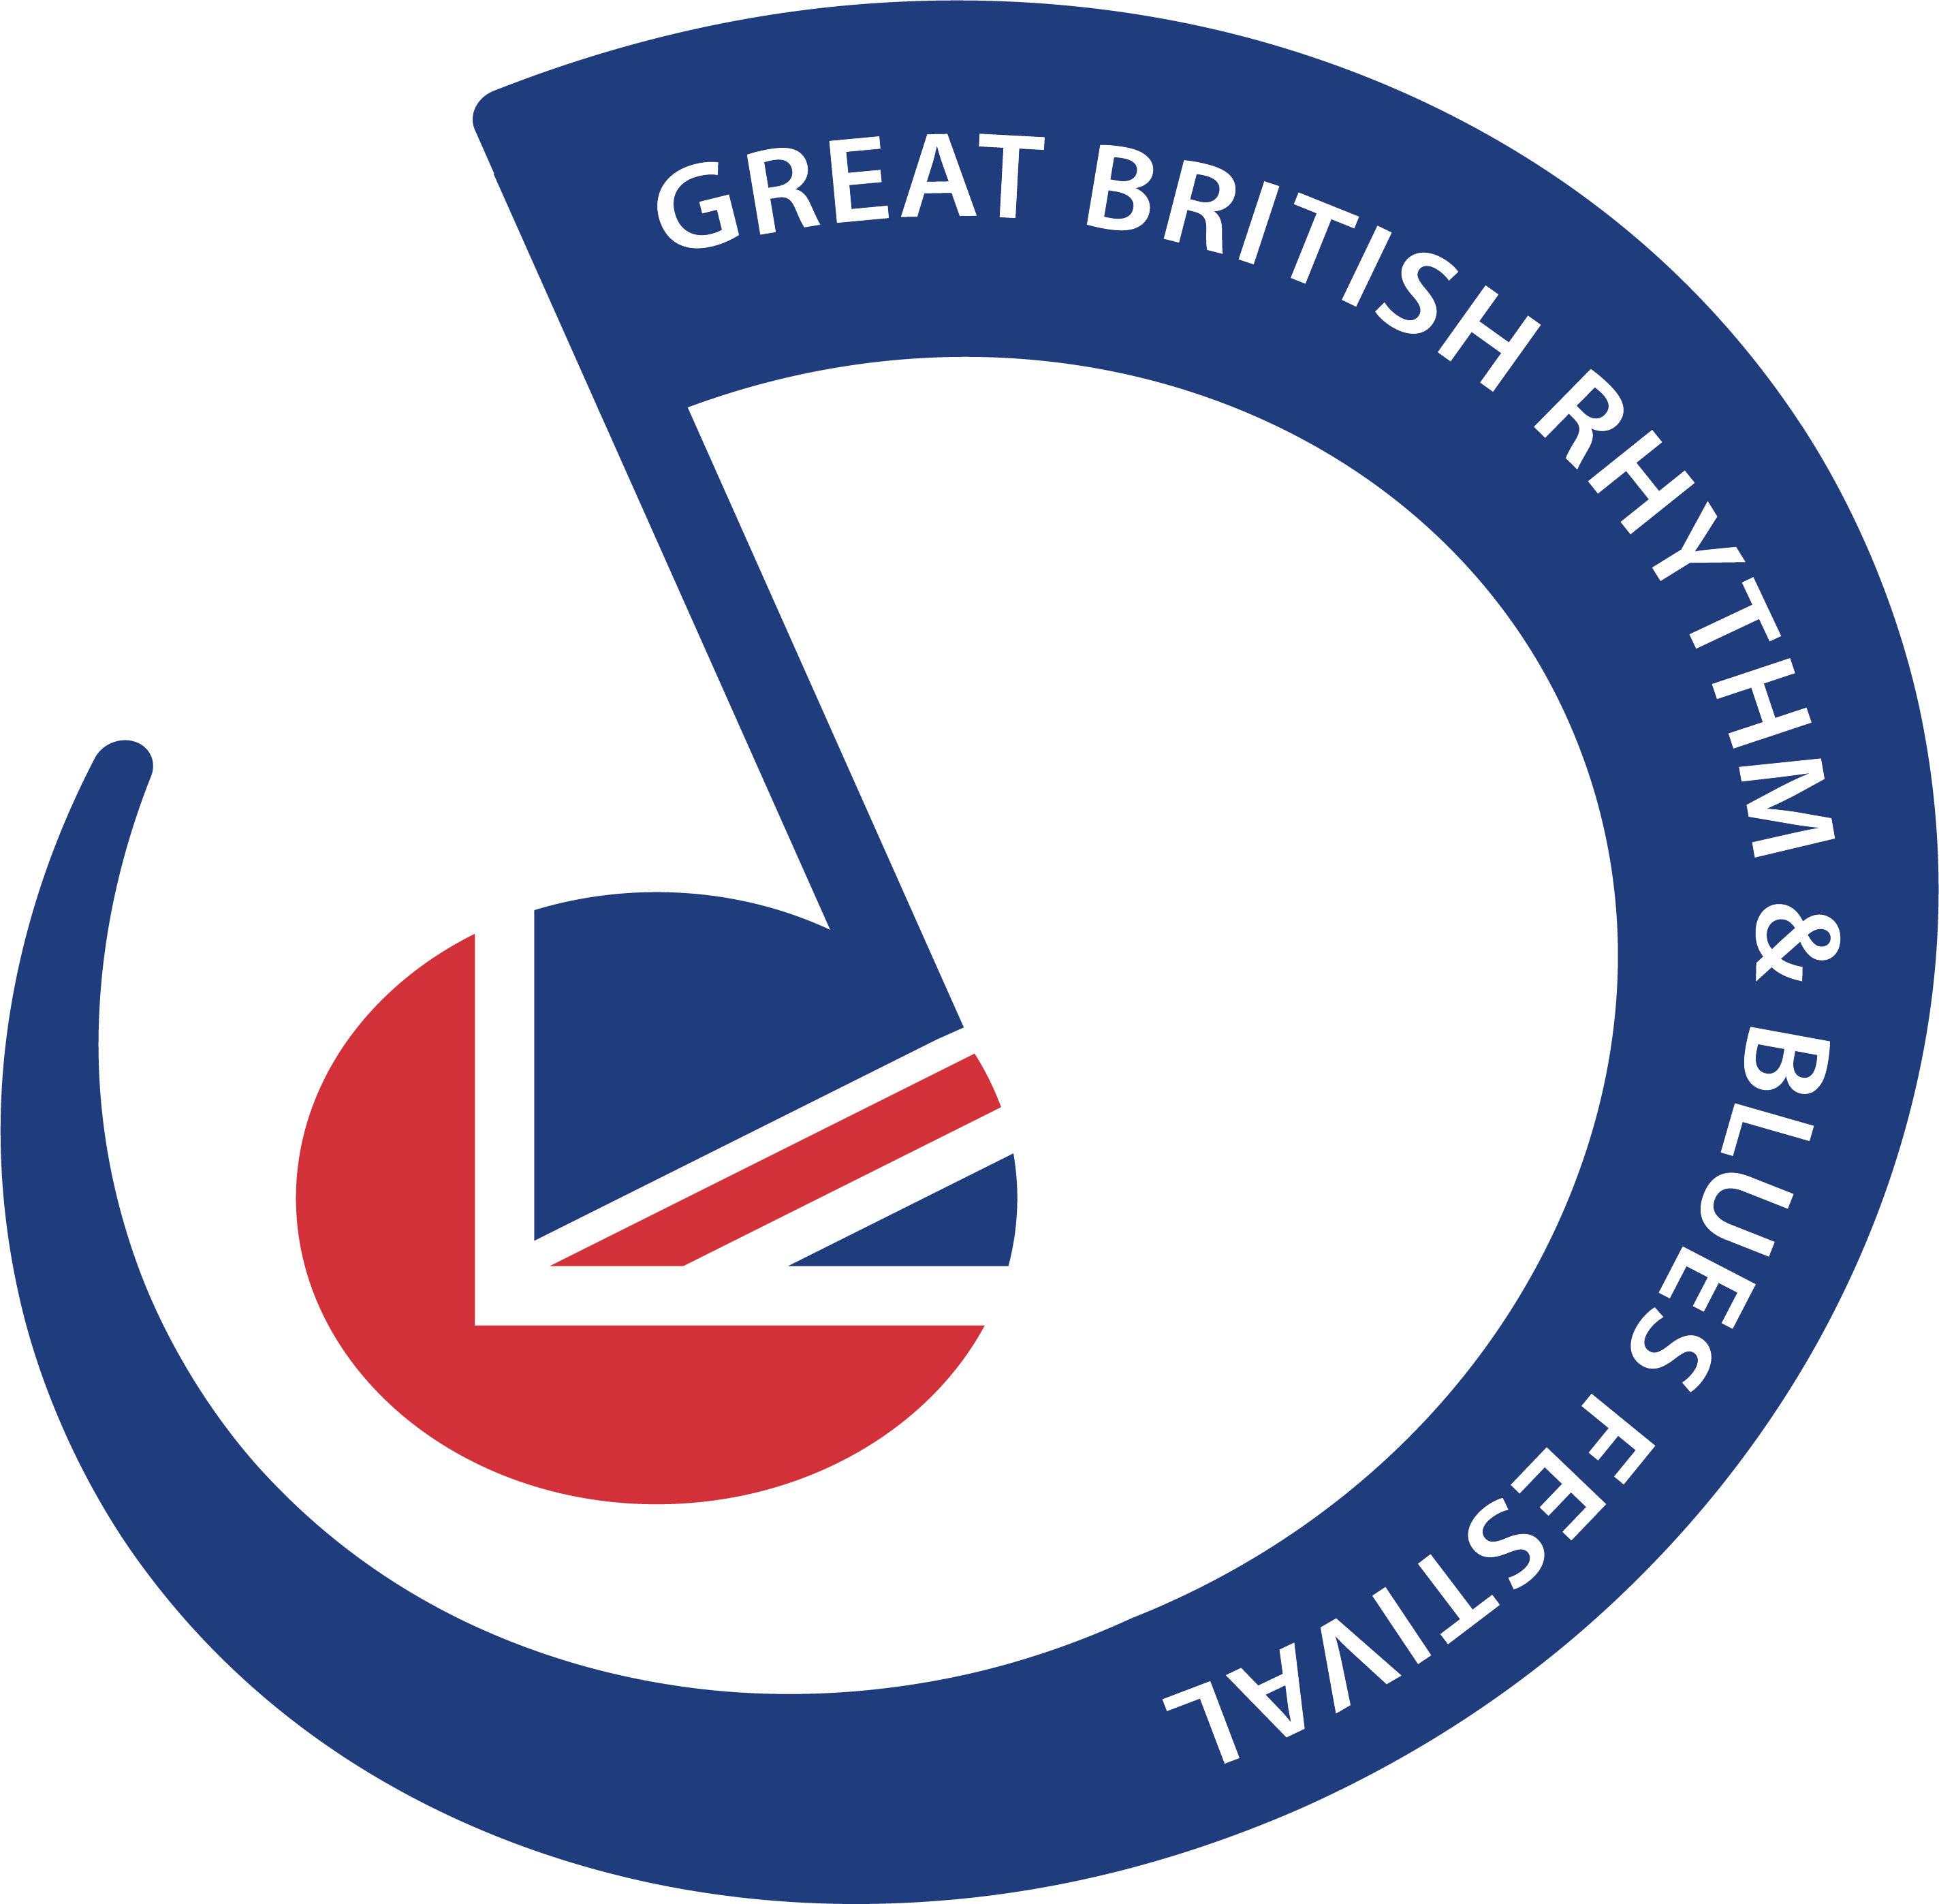 The Great British Rhythm & Blues Festival - Individual Day Ticket banner image